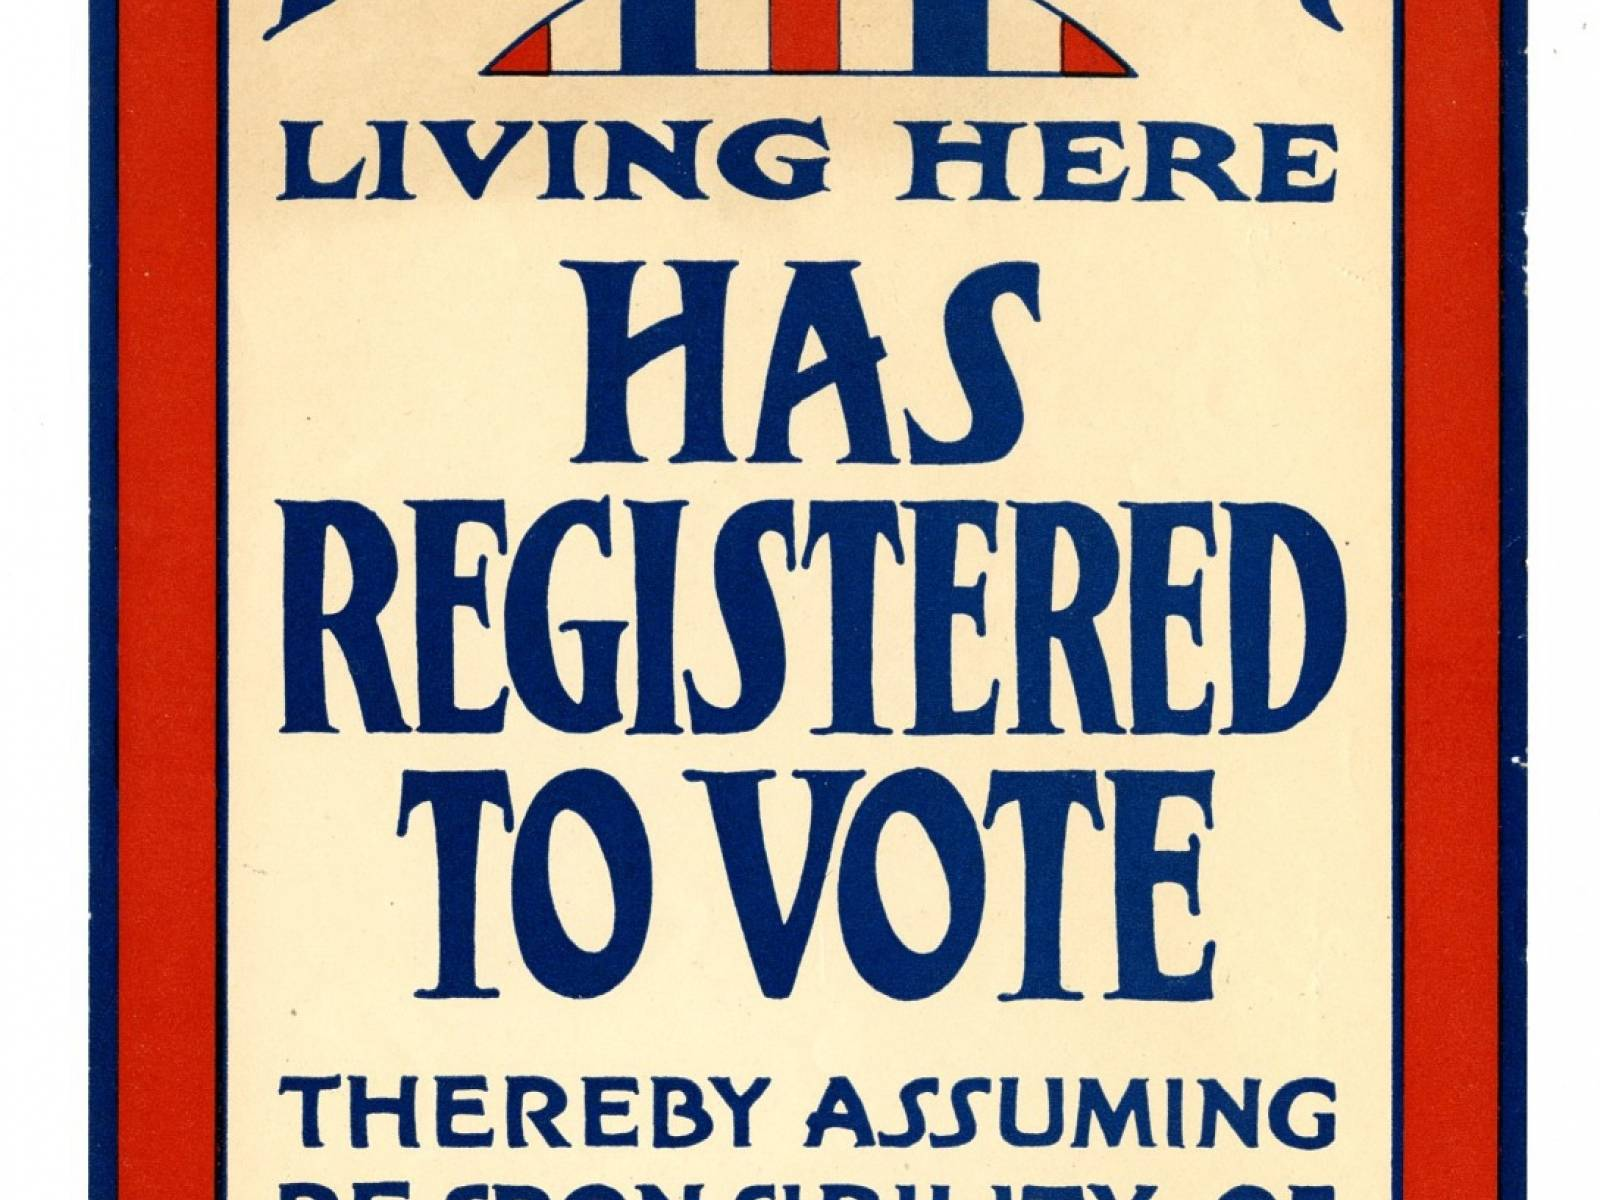 """A Woman Living Here Has Registered to Vote,"" window sign for a home, 1919. Courtesy of National Museum of American History"